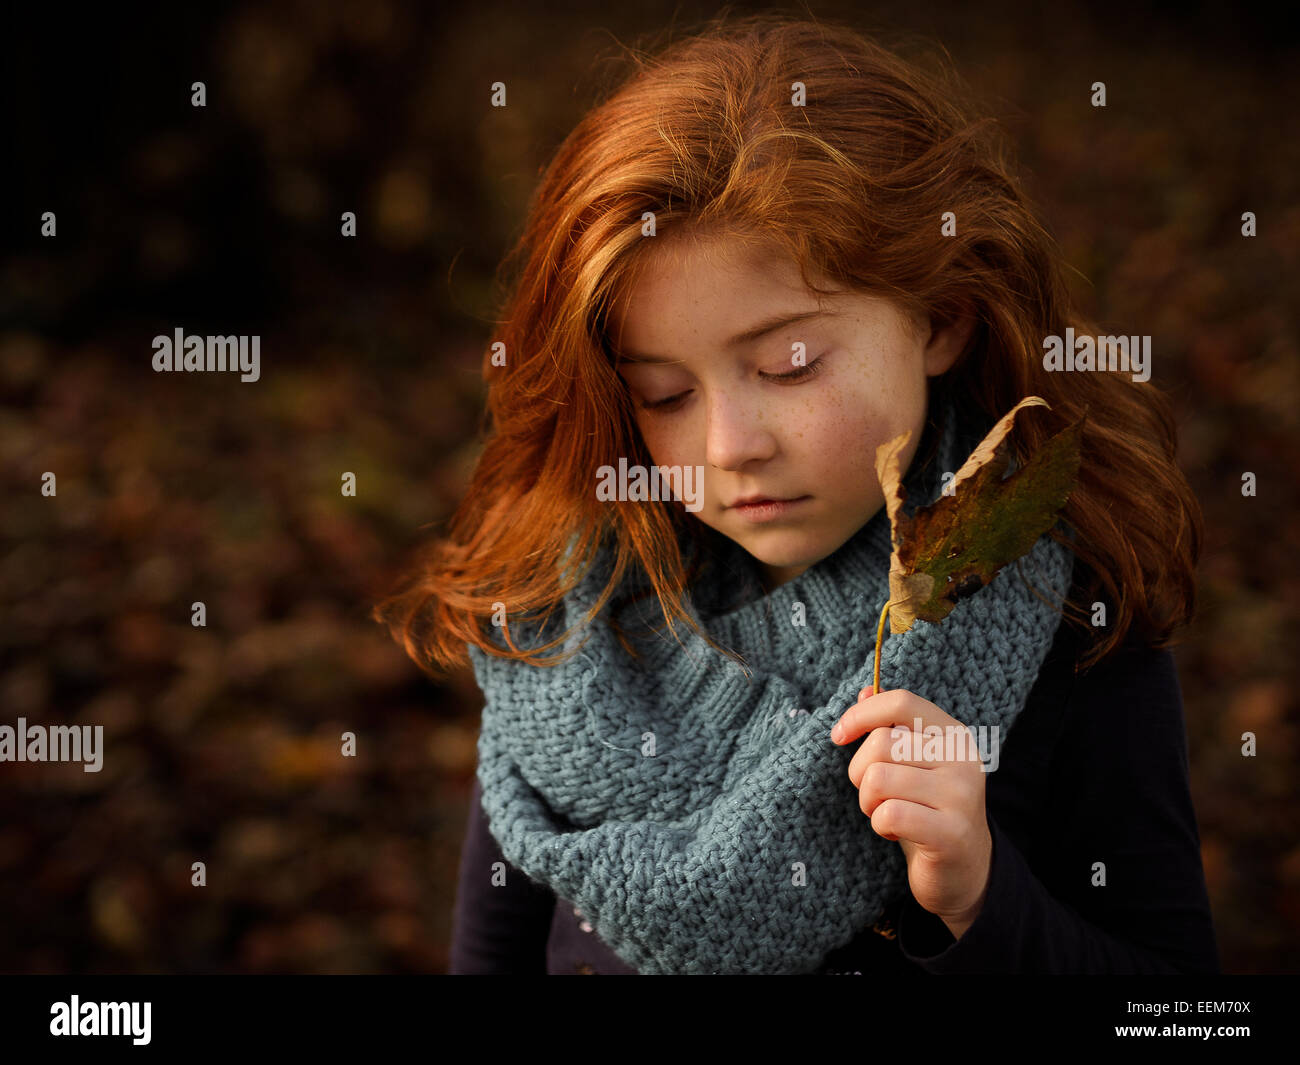 Red haired girl holding autumn leaf Banque D'Images